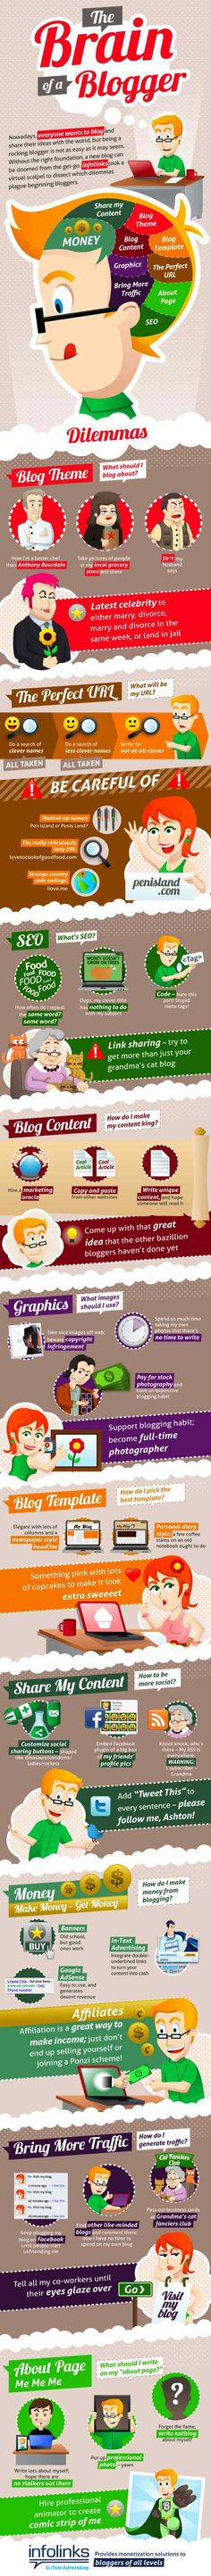 The brain of the beginning blogger [sweet graphic and on the money]